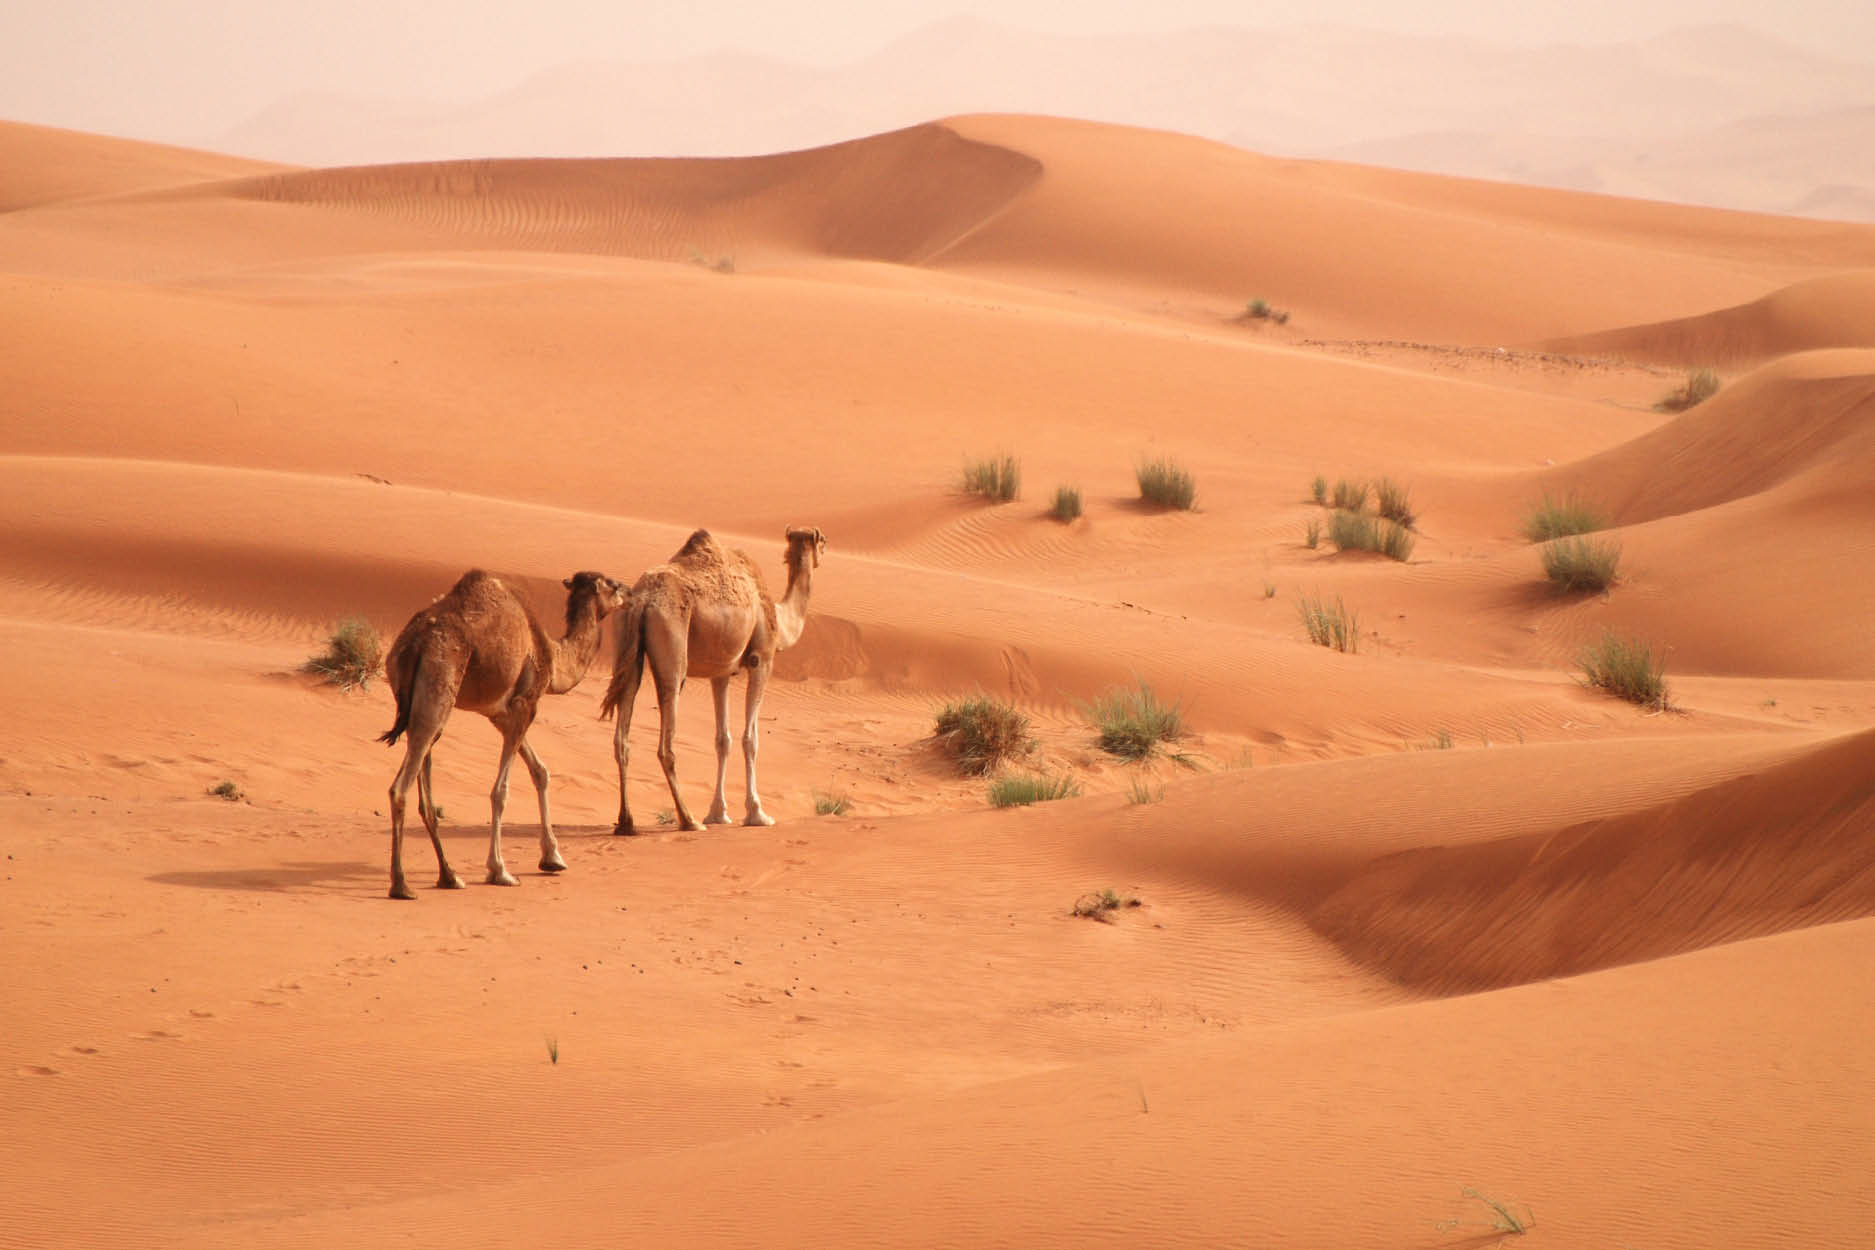 Desert Safaris In Dubai See More Of The City With My Dubai